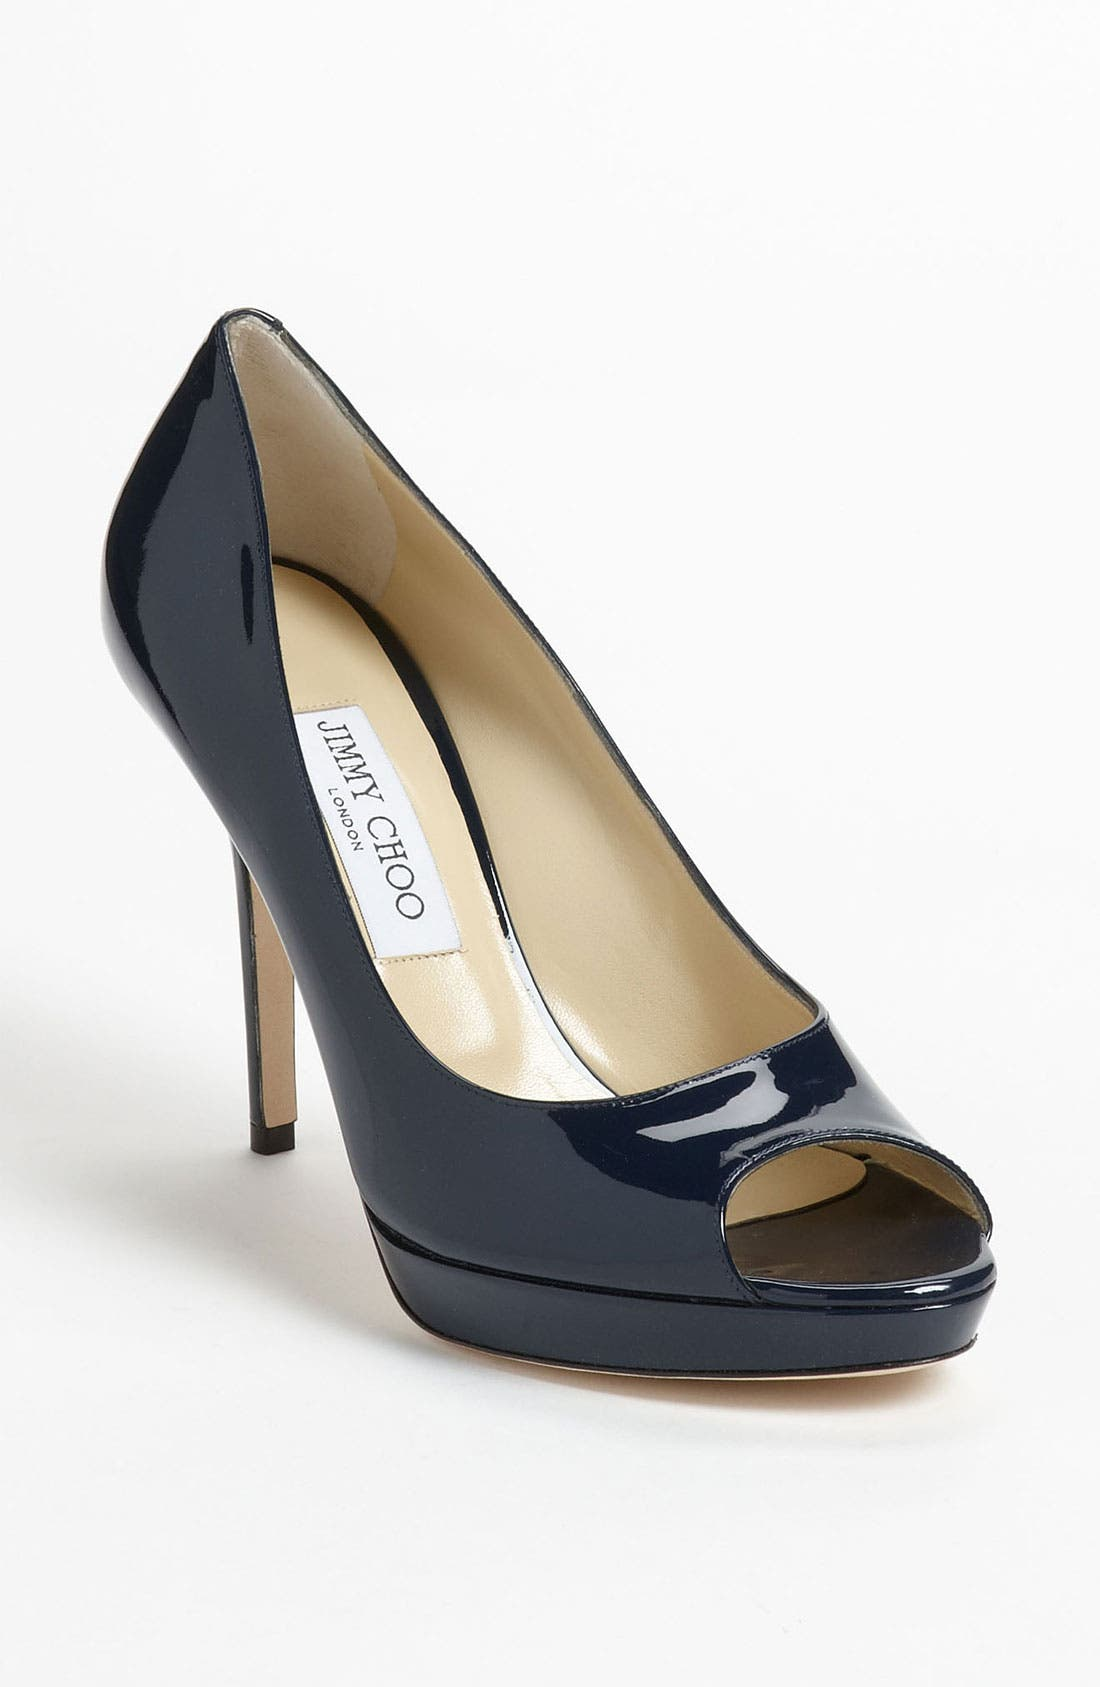 Main Image - Jimmy Choo 'Luna' Peep Toe Platform Pump (Women)